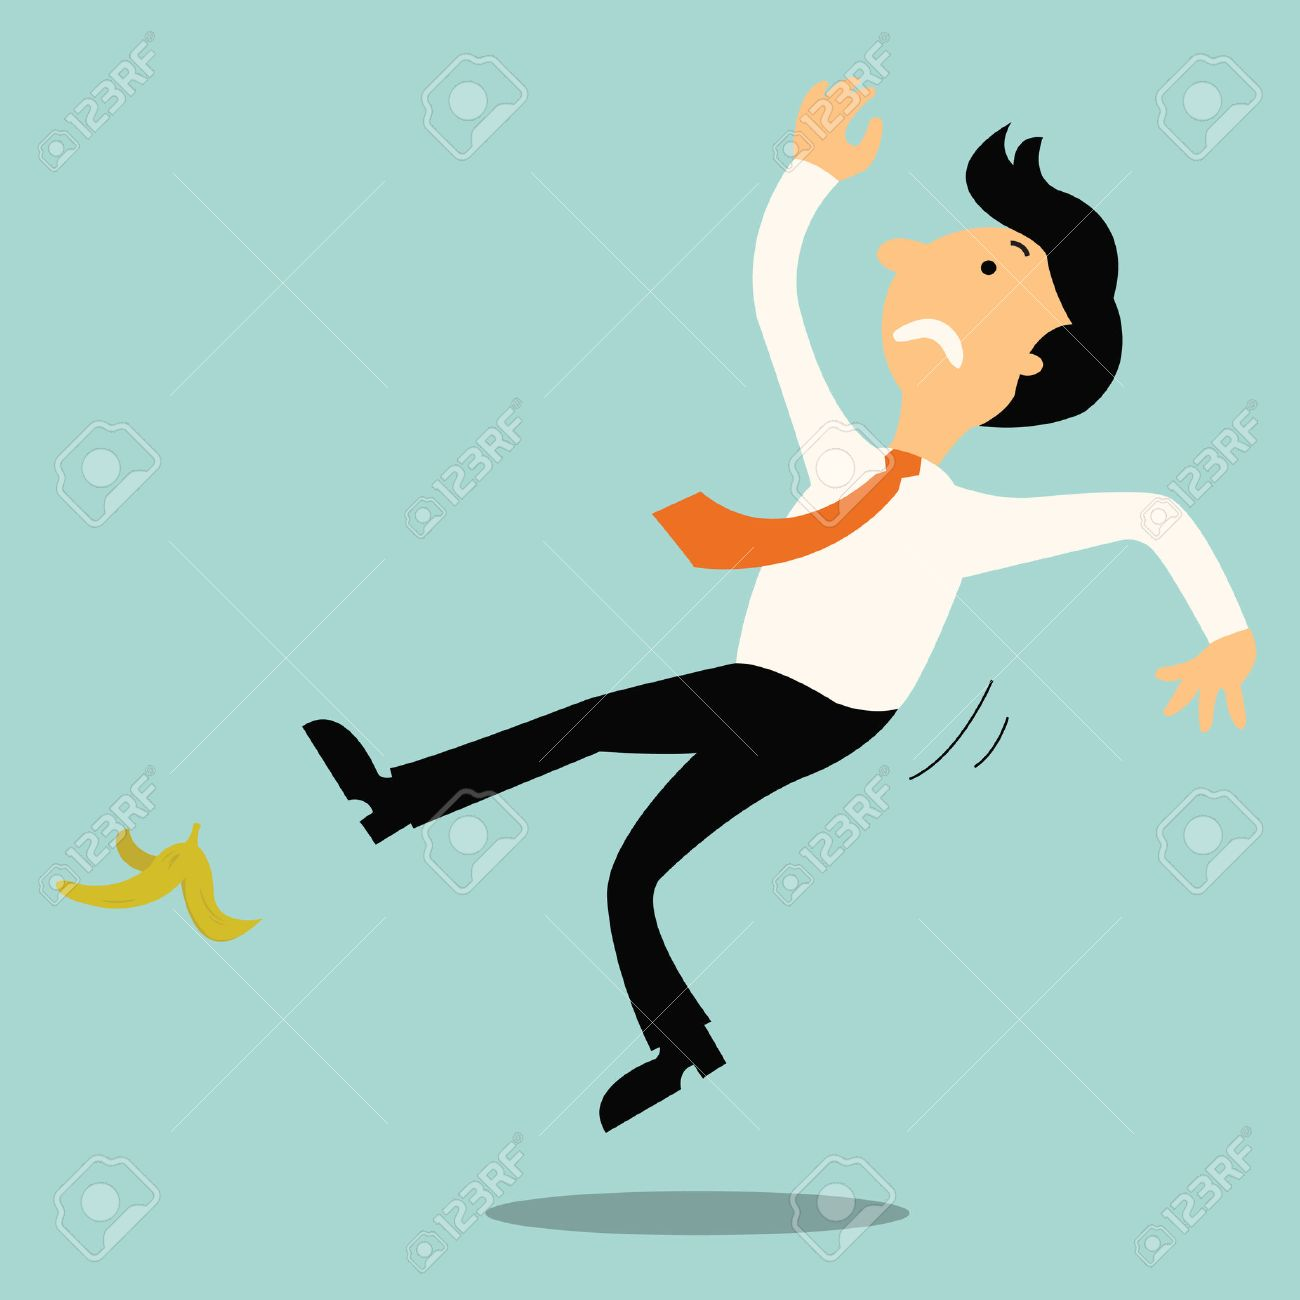 Young businessman slip on banana peel and falling down. - 27674000